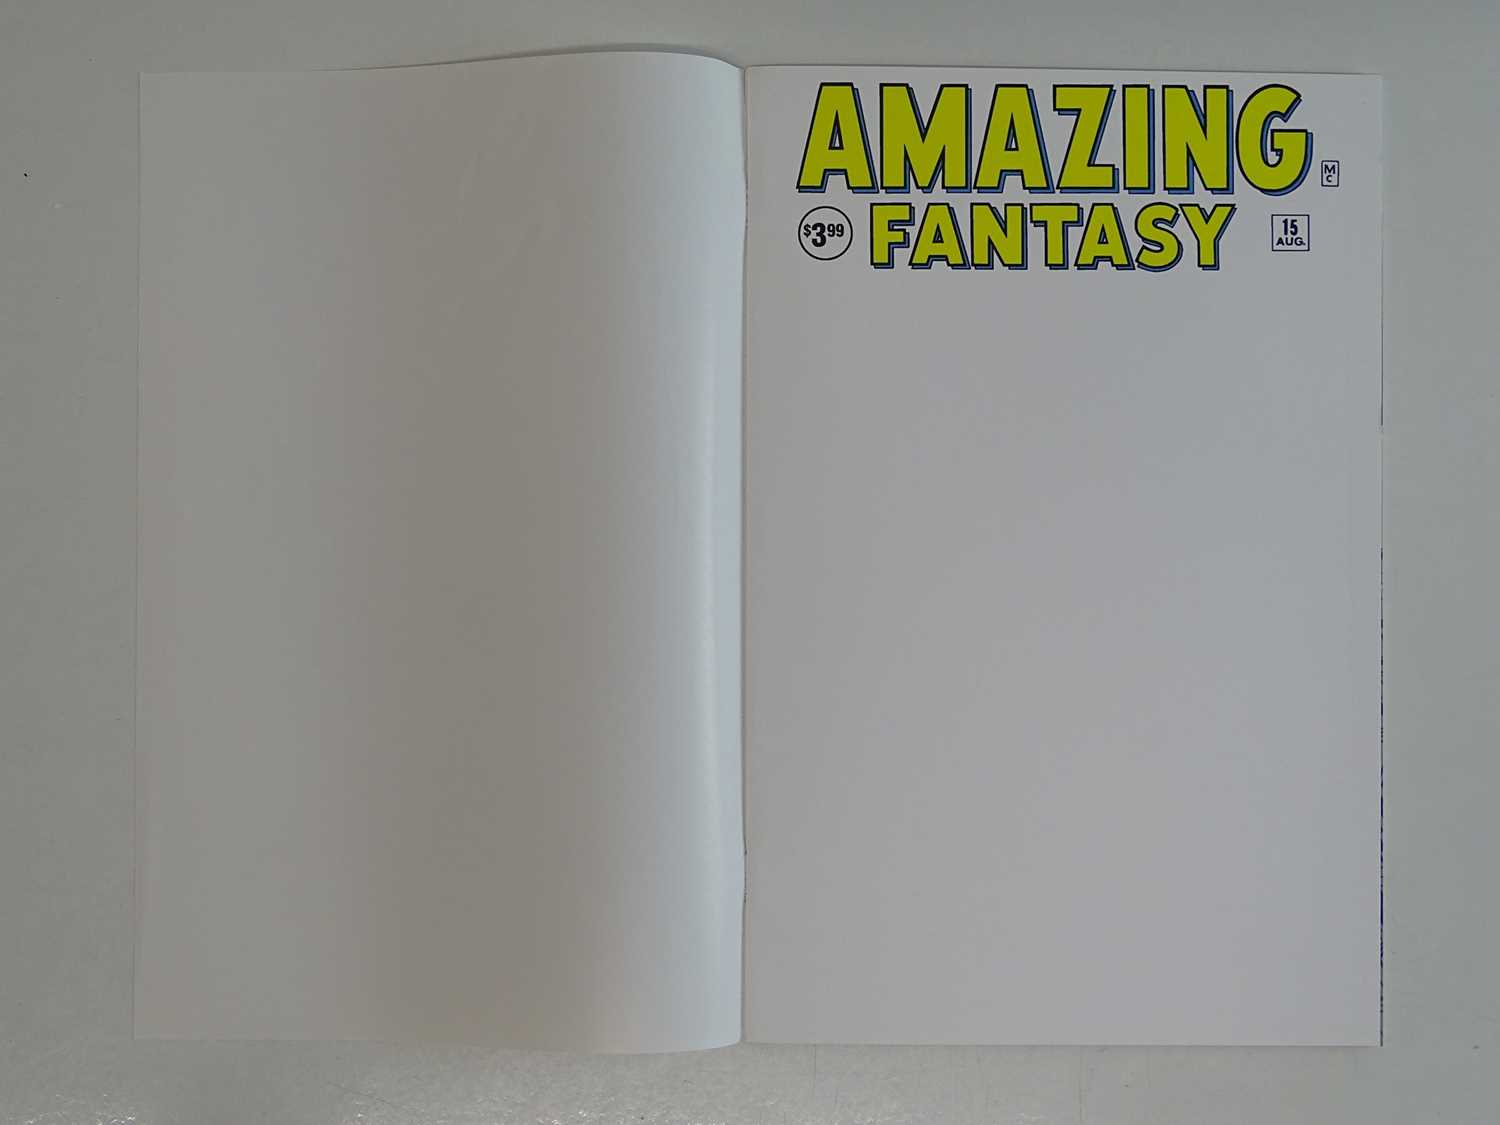 AMAZING FANTASY #15 - (1968 - MARVEL) - Facsimile Edition + White Cover with cover protector - Image 2 of 8